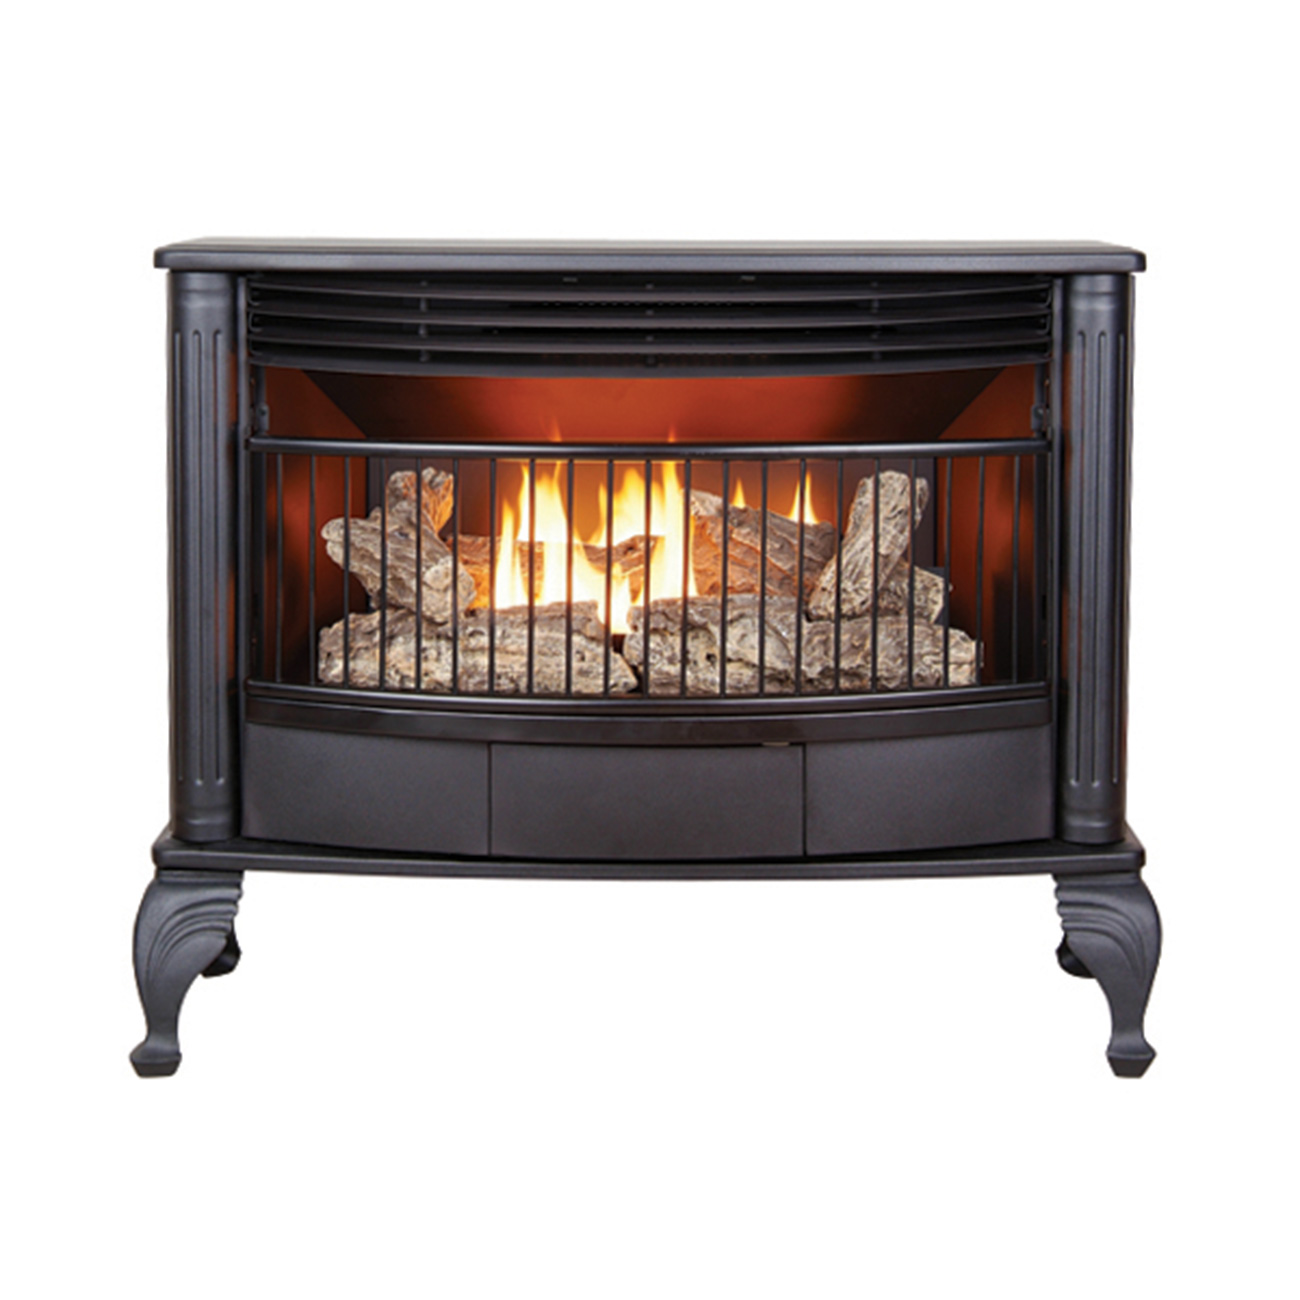 Wholesale Fireplace Inserts Procom Heating Online Store Heaters Fireplaces Wall Heaters